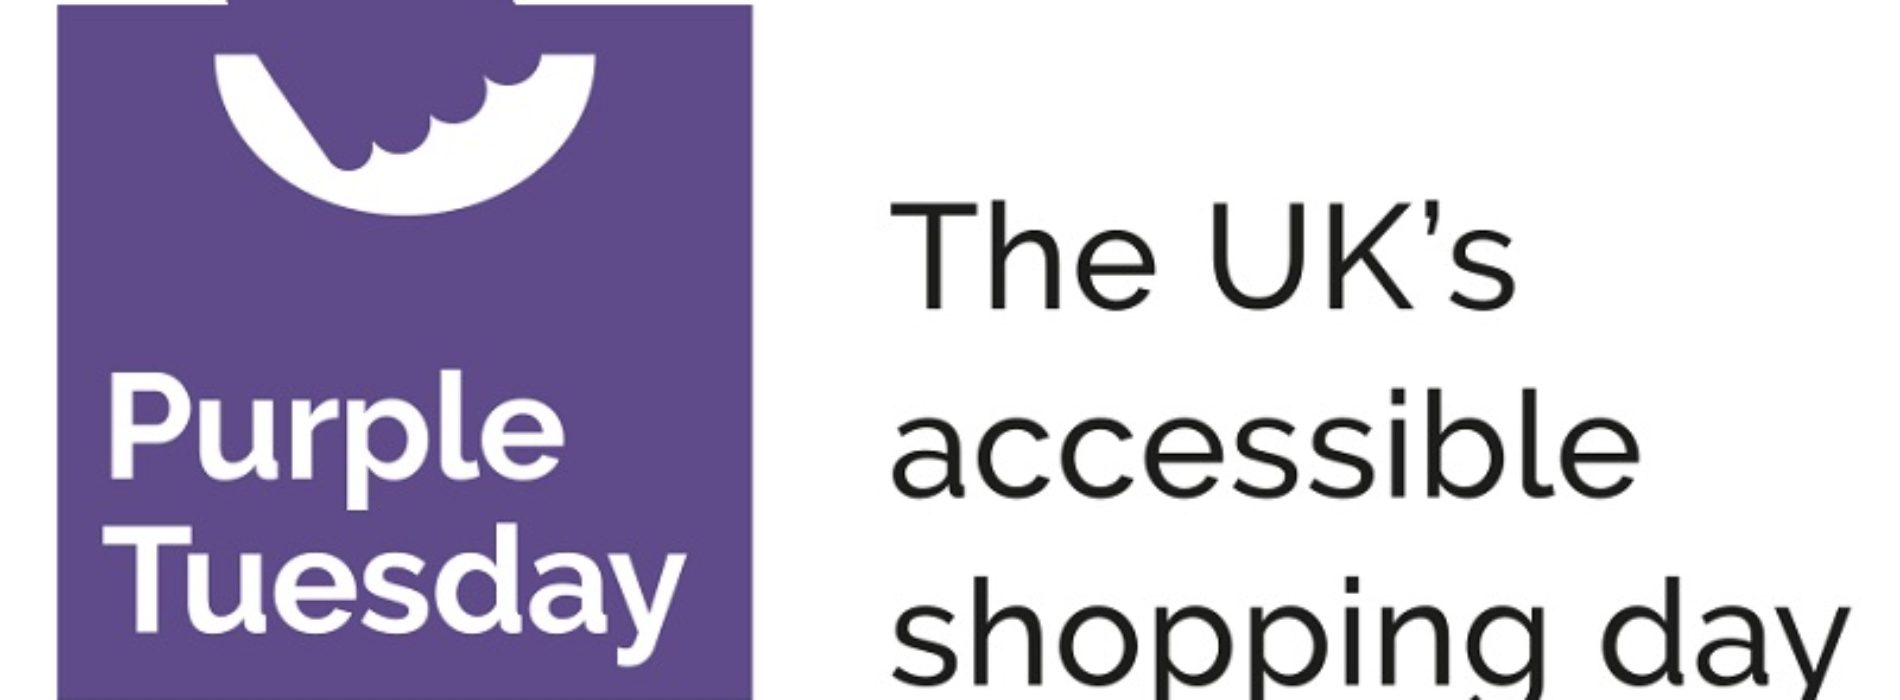 Purple Tuesday: the UK's first accessible shopping day